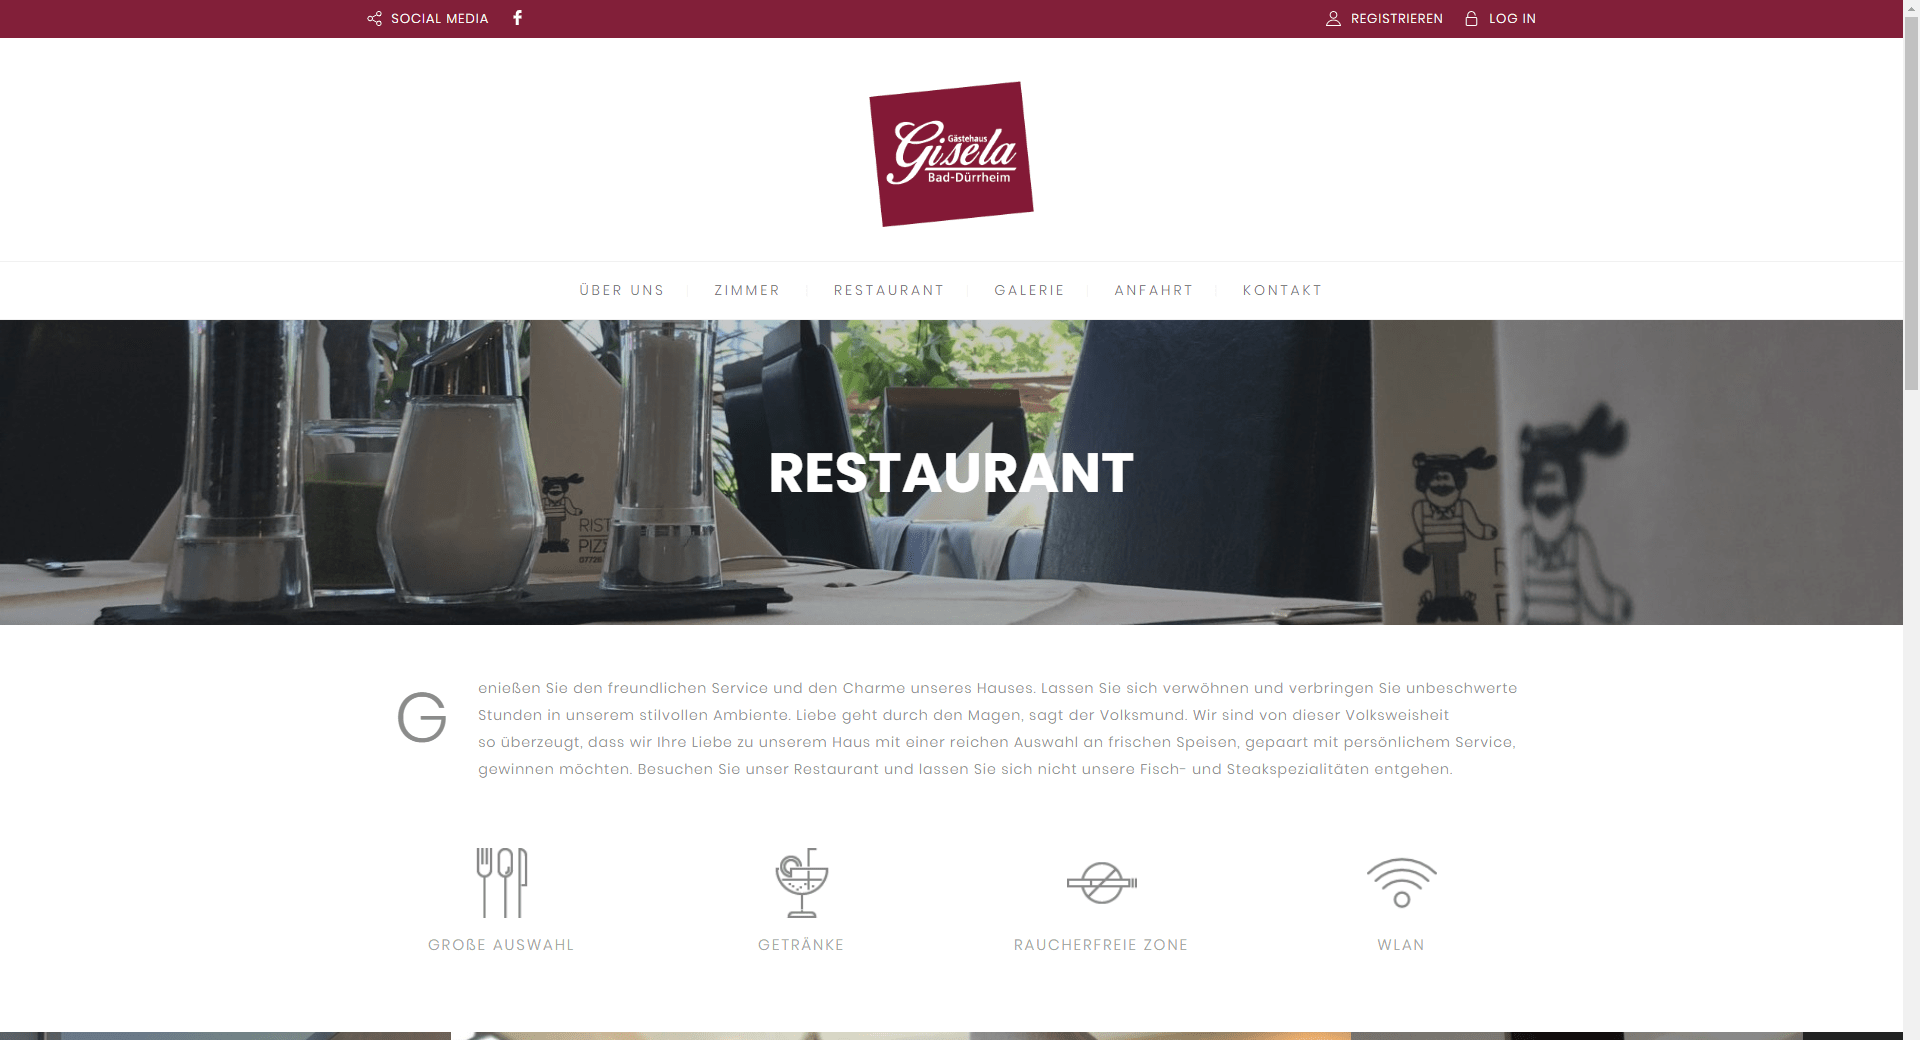 ScreenShot 039 Restaurant – Gästehaus Gisela - Google Chrome